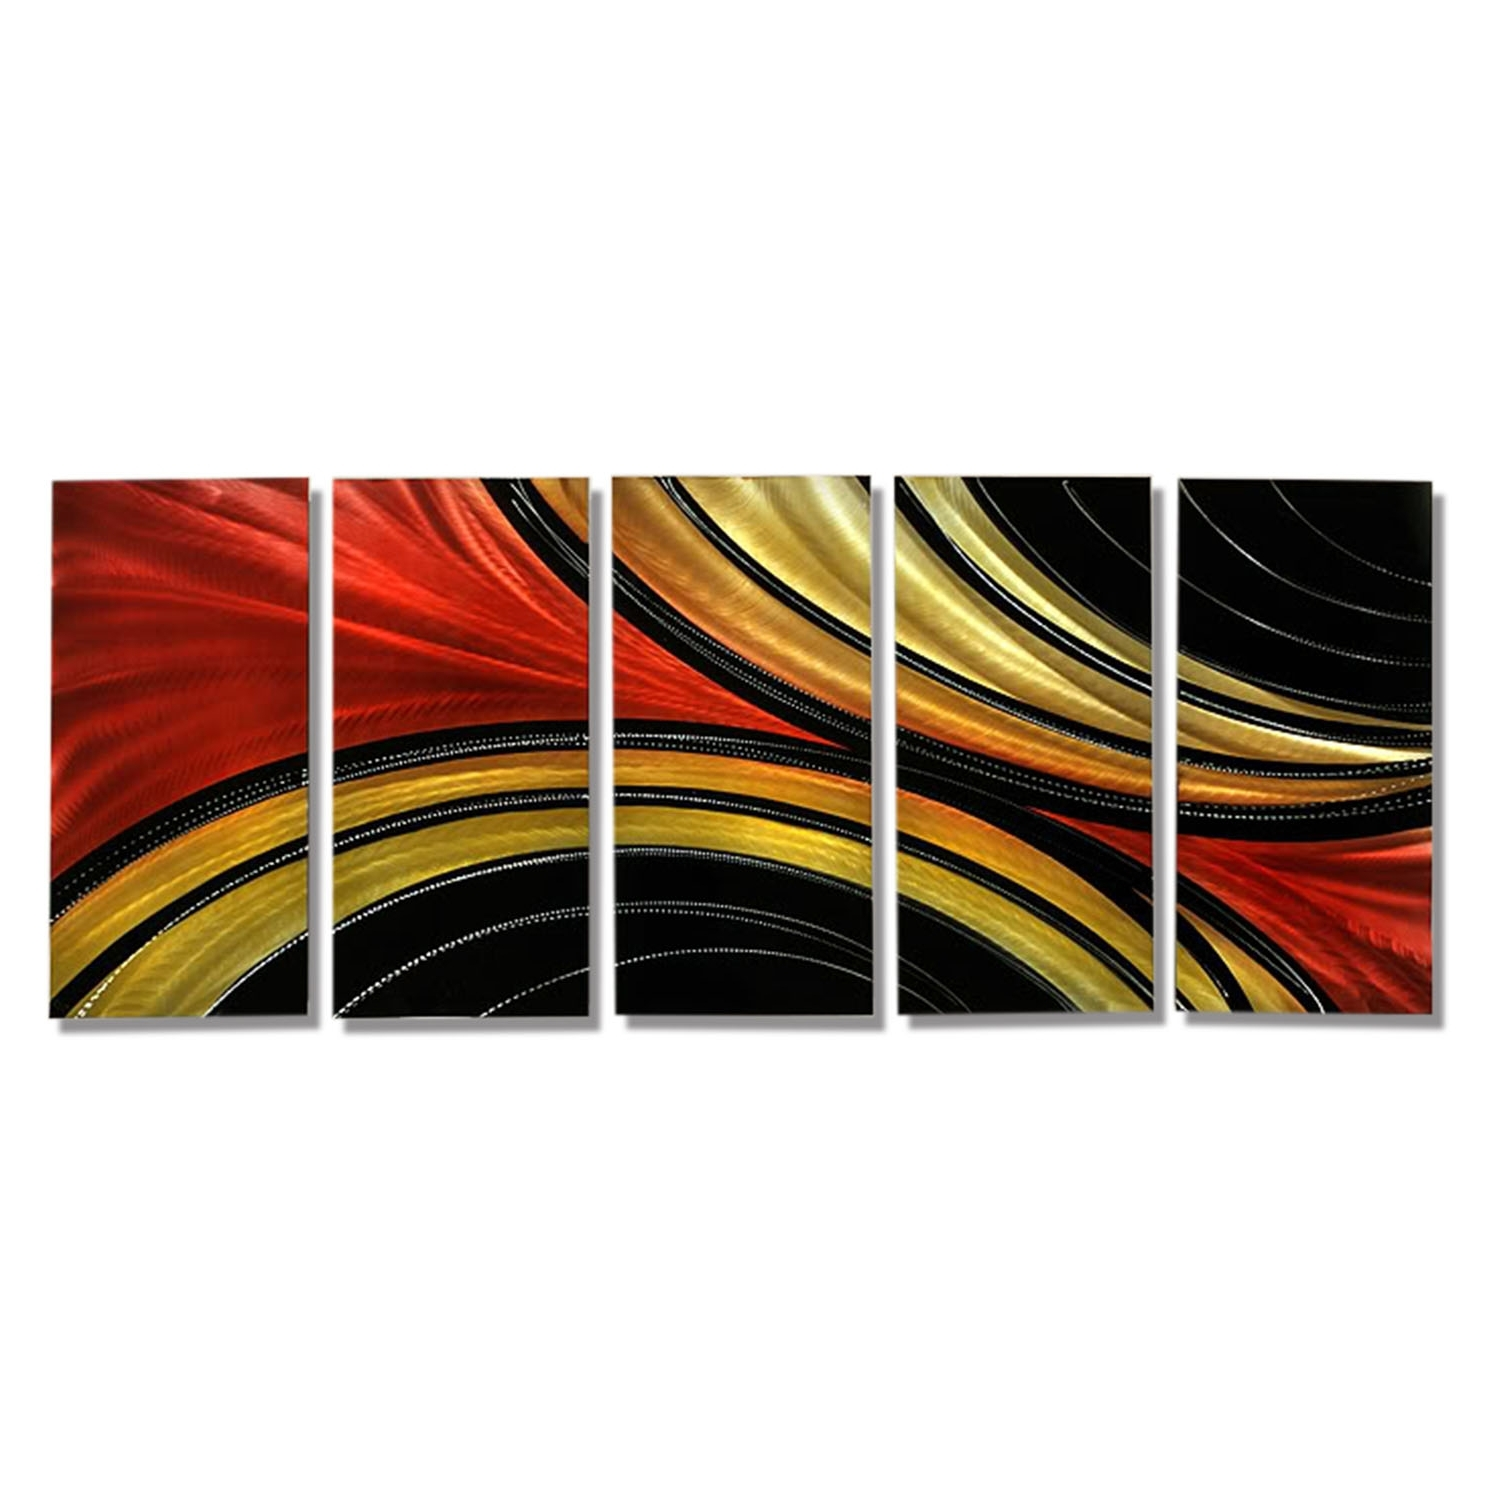 Black And Gold Abstract Wall Art Regarding Preferred Solaris Xl – Massive Metal Abstract Red Black Gold Painting Wall (View 3 of 15)